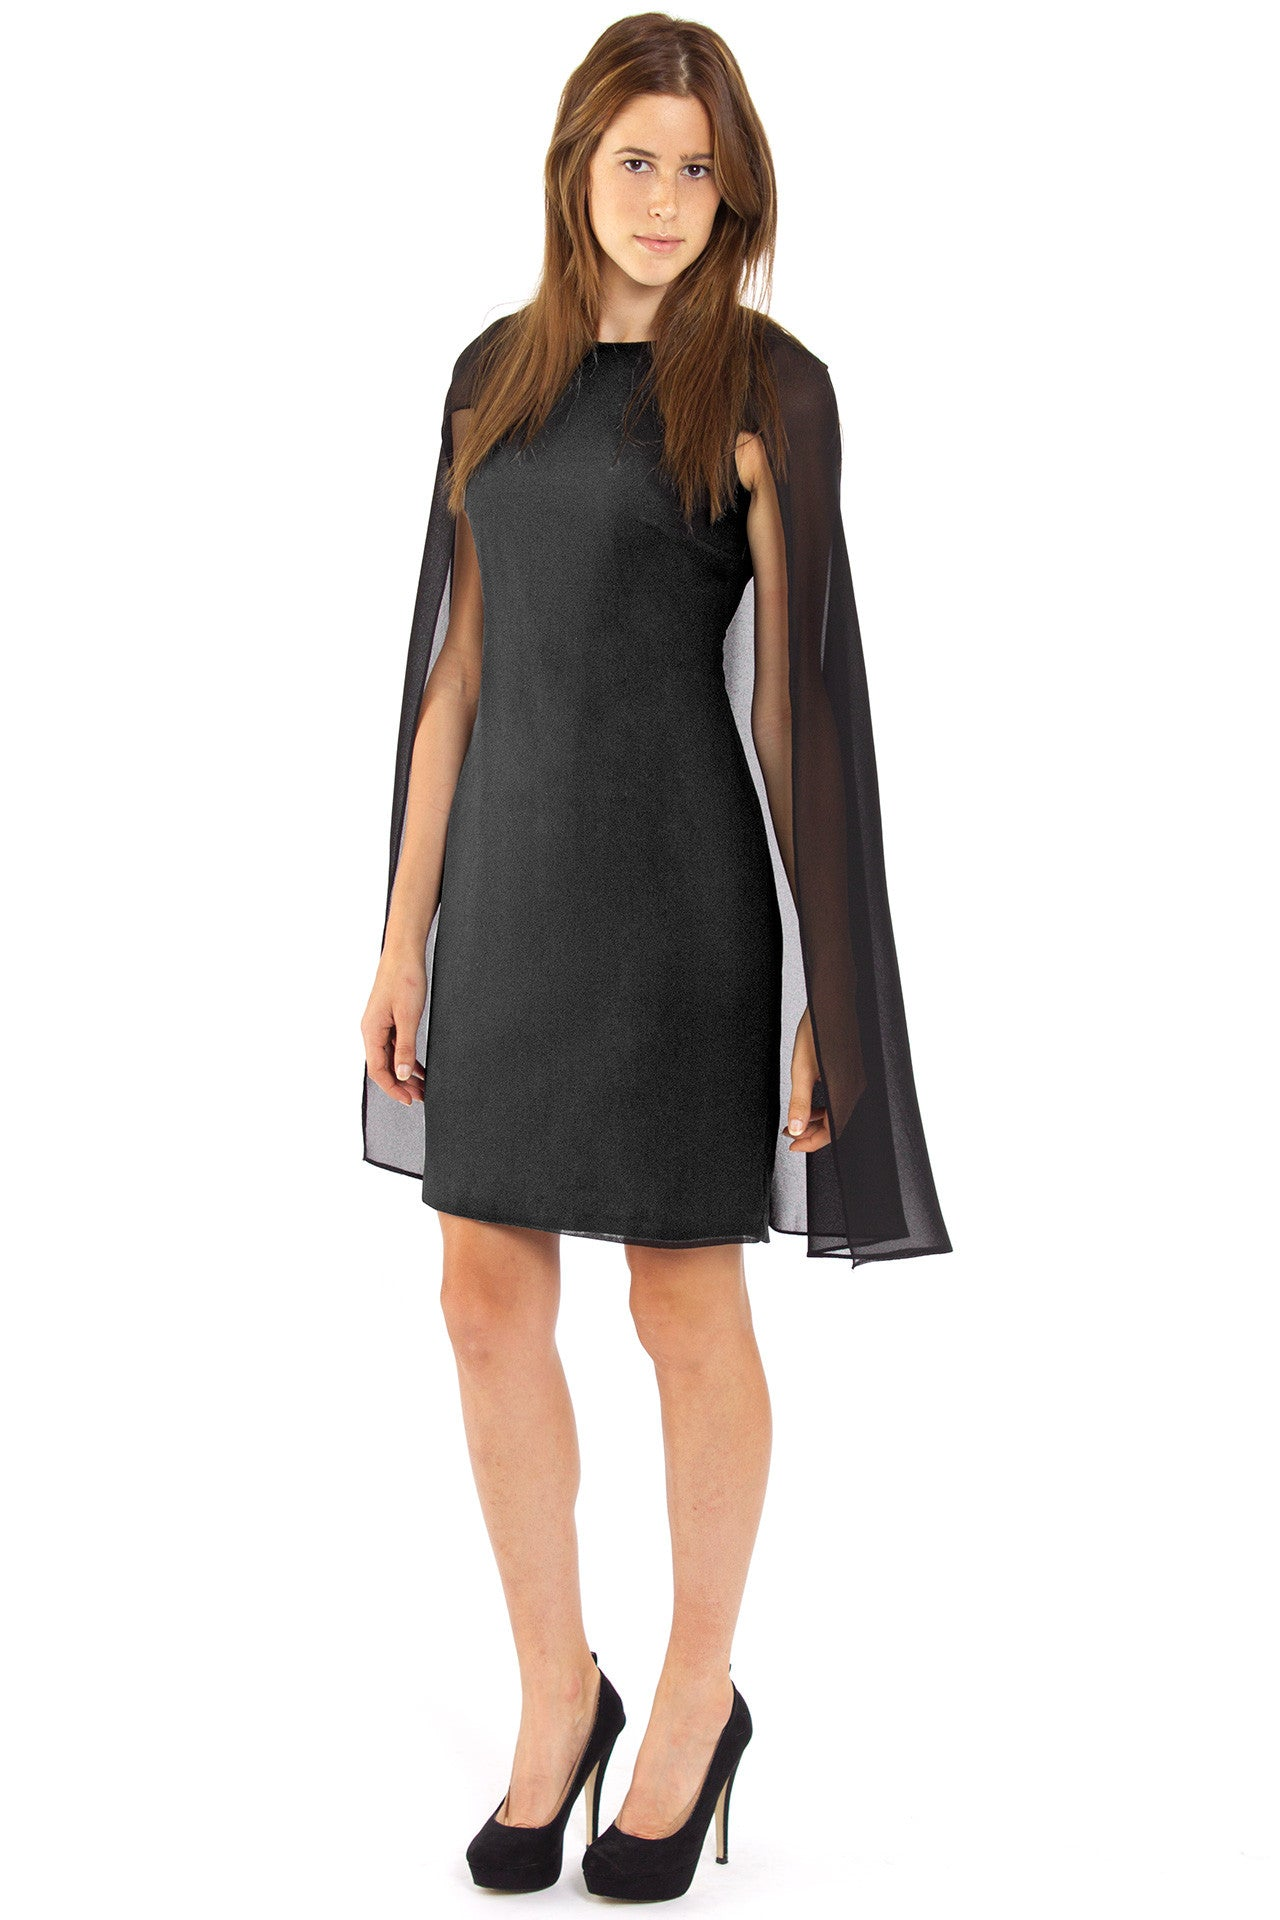 Black dress very - 520102 Black Dress Top Pick Very Fitted Sizing Up Is Recommended